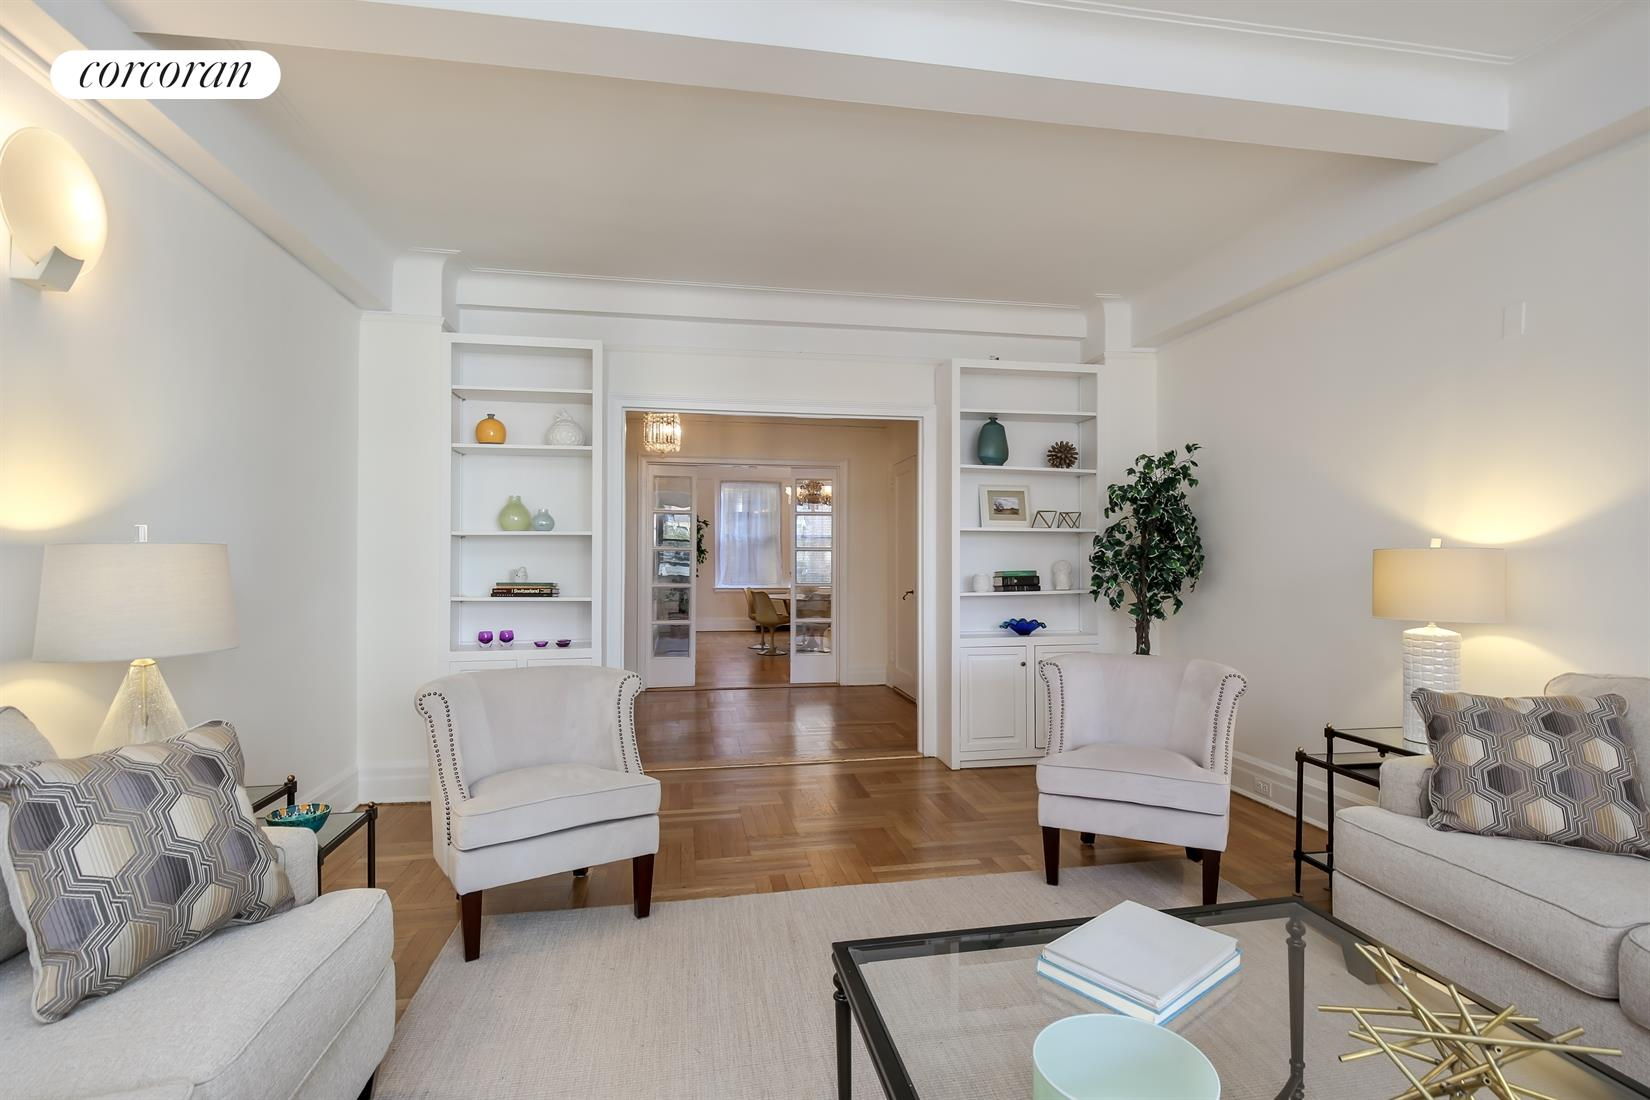 470 West End Avenue, 6A, 24-foot living room with beamed ceiling faces west